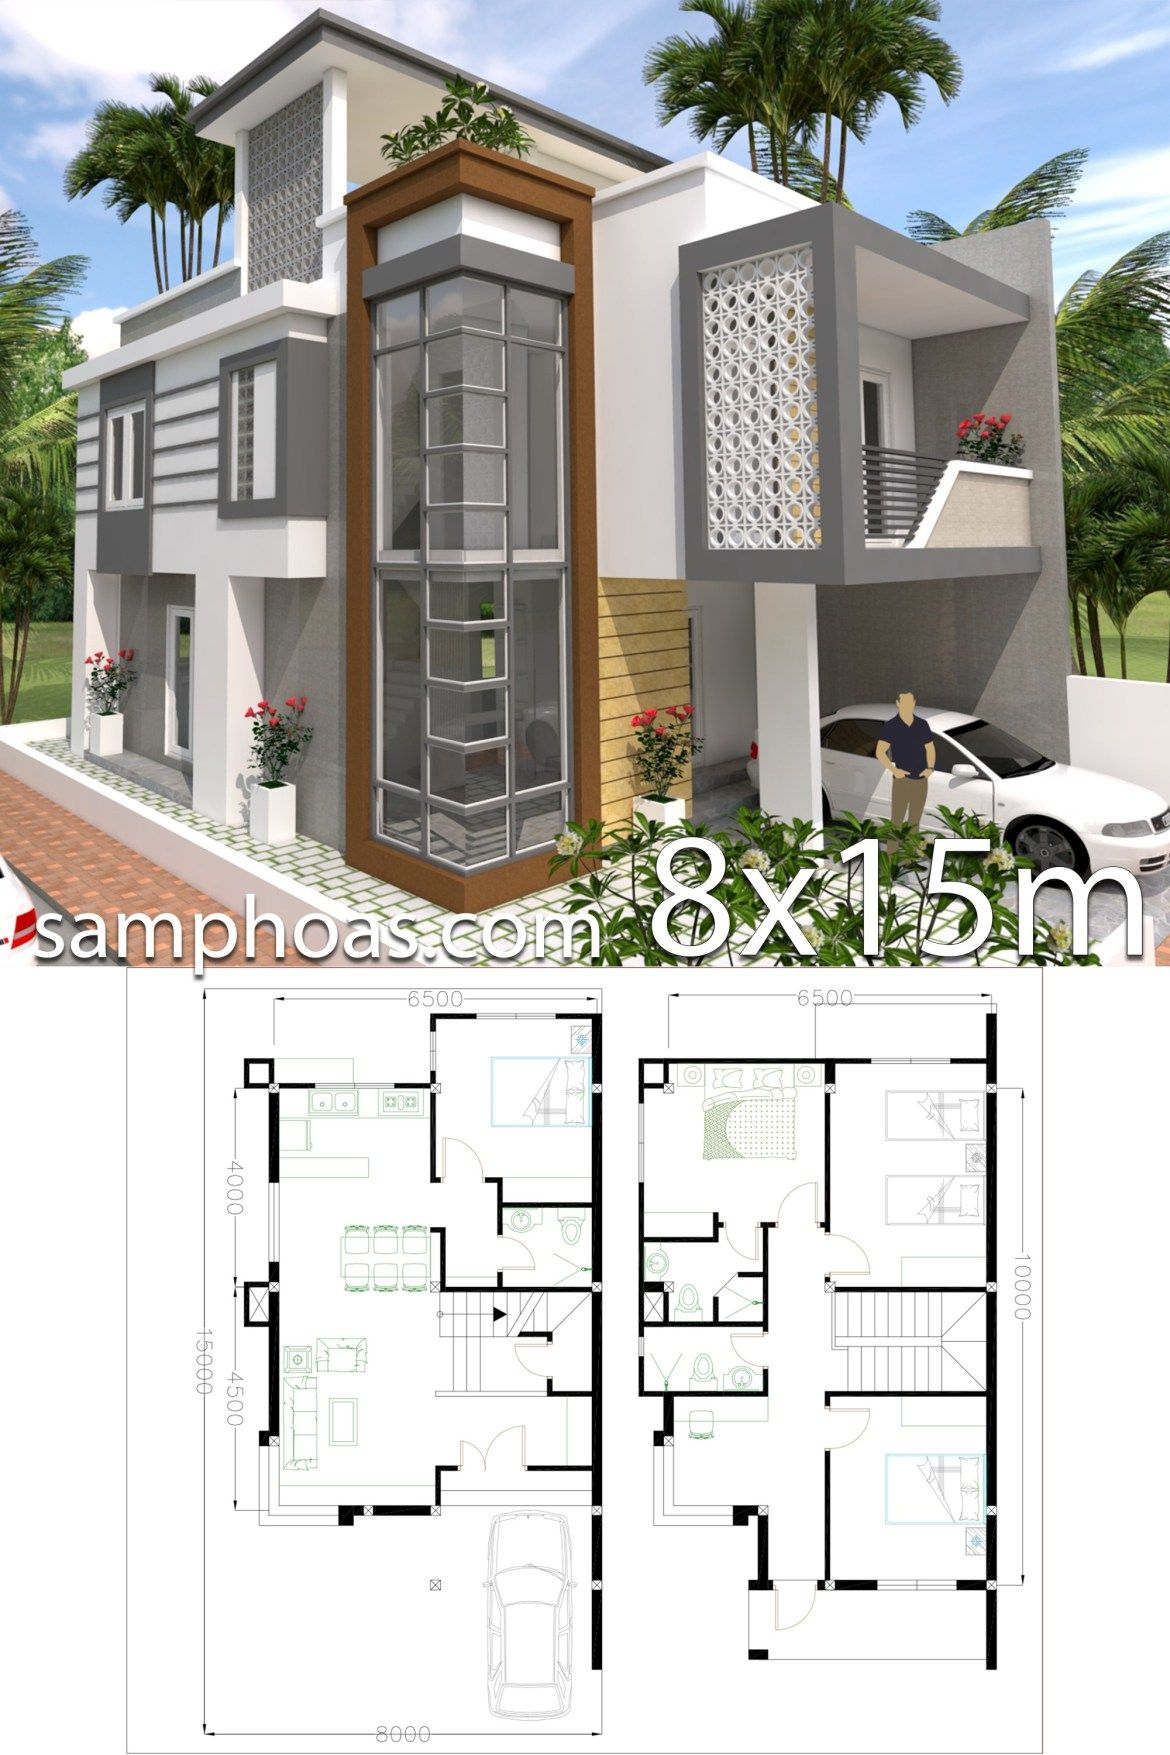 Phenomenal Home Design Plan 8X15M With 4 Bedrooms Samphoas Plansearch Complete Home Design Collection Epsylindsey Bellcom